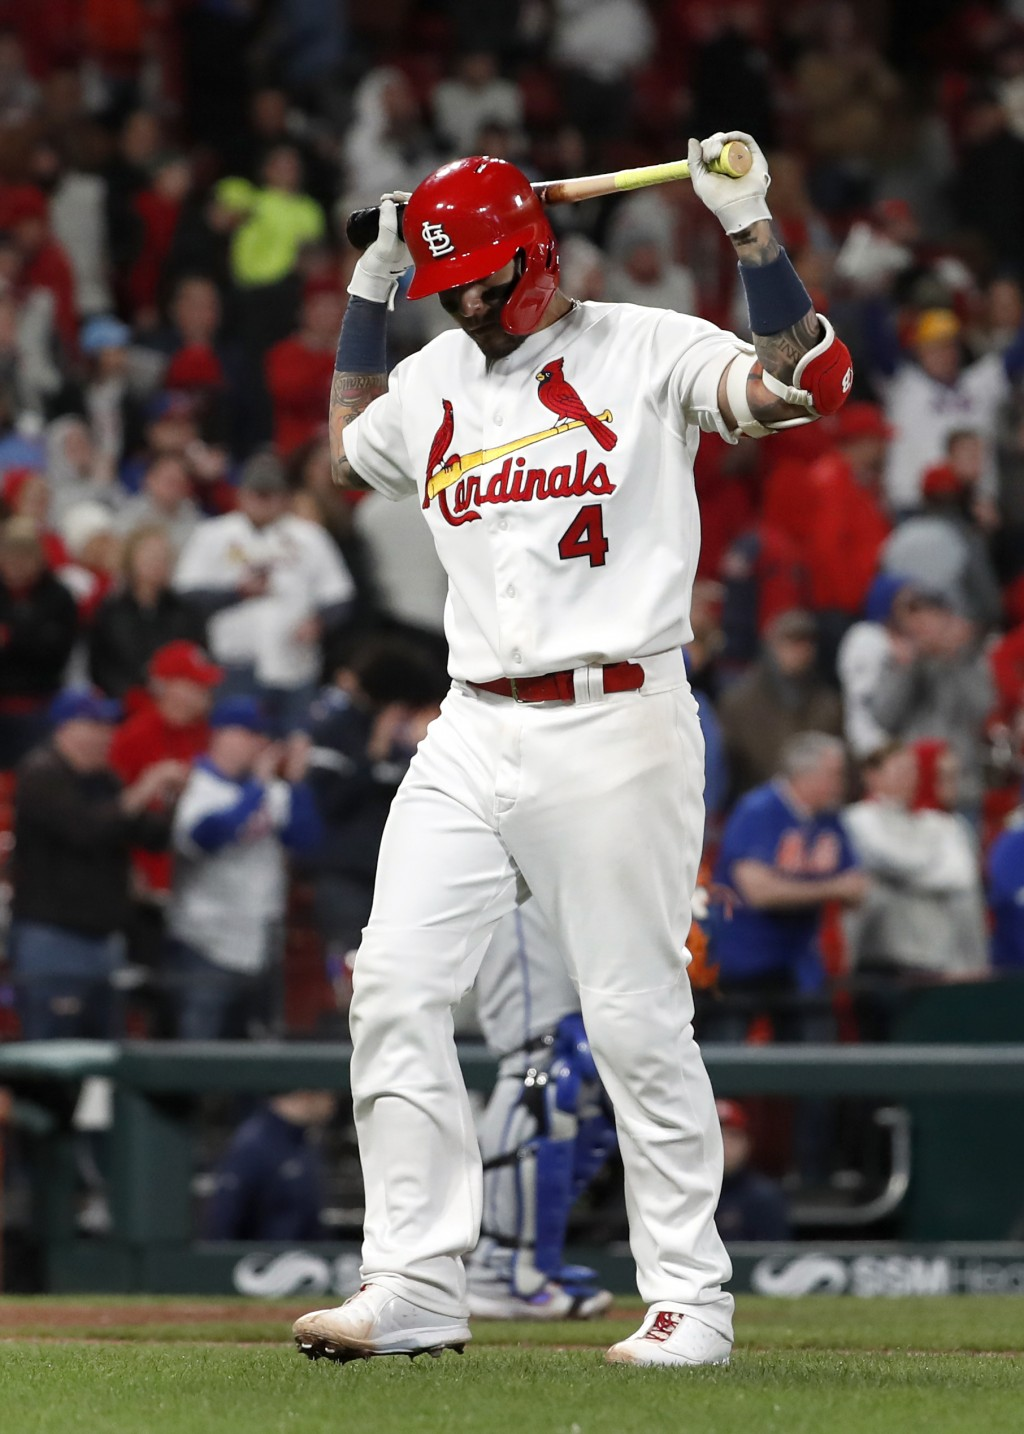 St. Louis Cardinals' Yadier Molina reacts after flying out to end a baseball game against the New York Mets on Friday, April 19, 2019, in St. Louis. T